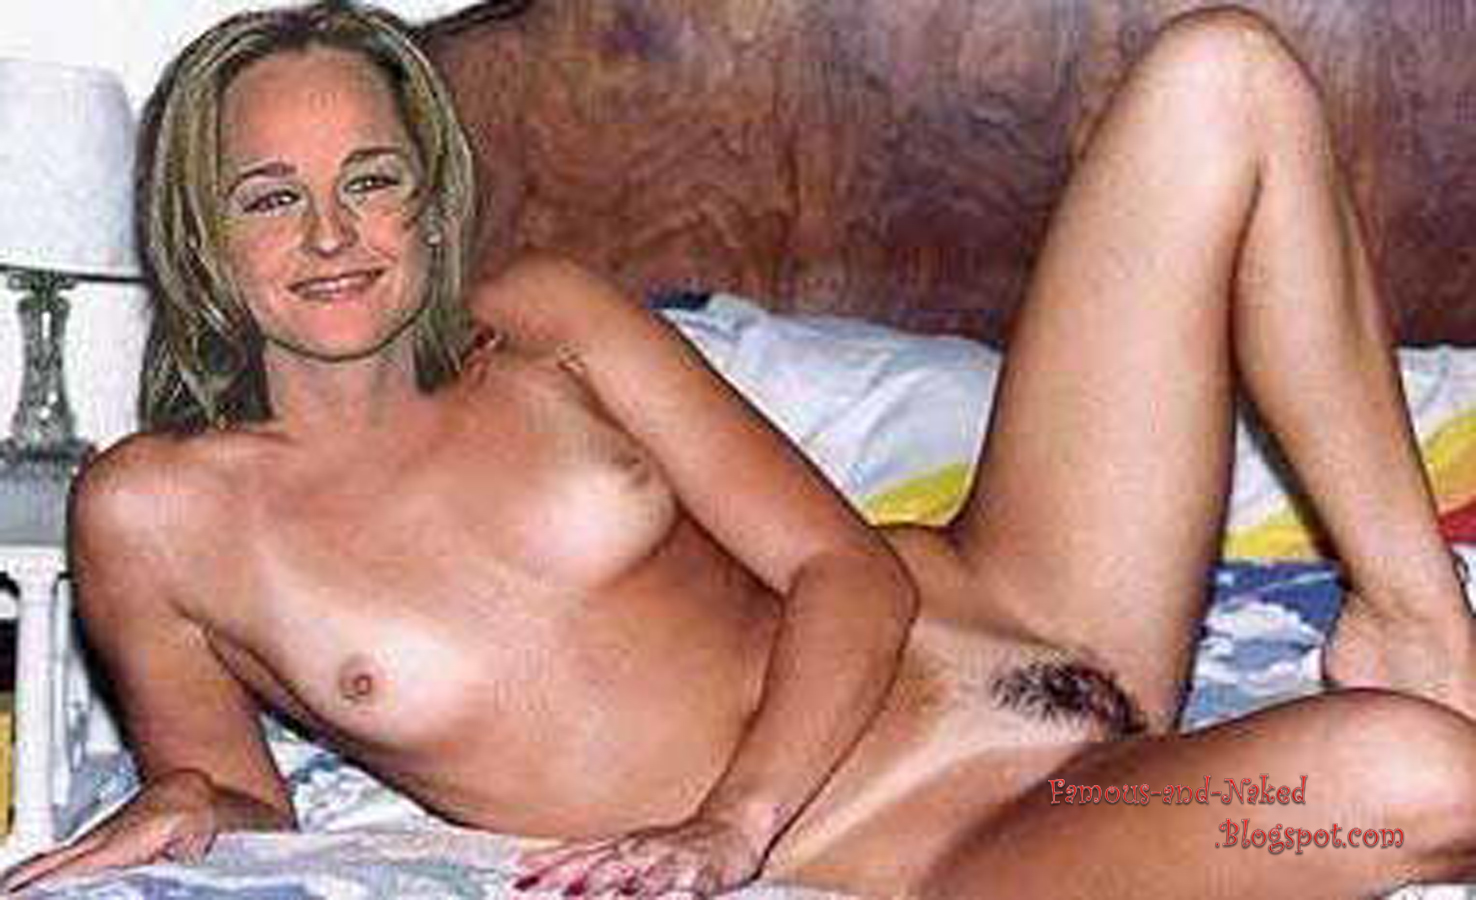 Famous and Naked: Helen Hunt Naked: famous-and-naked.blogspot.co.uk/2012/03/helen-hunt-naked_18.html